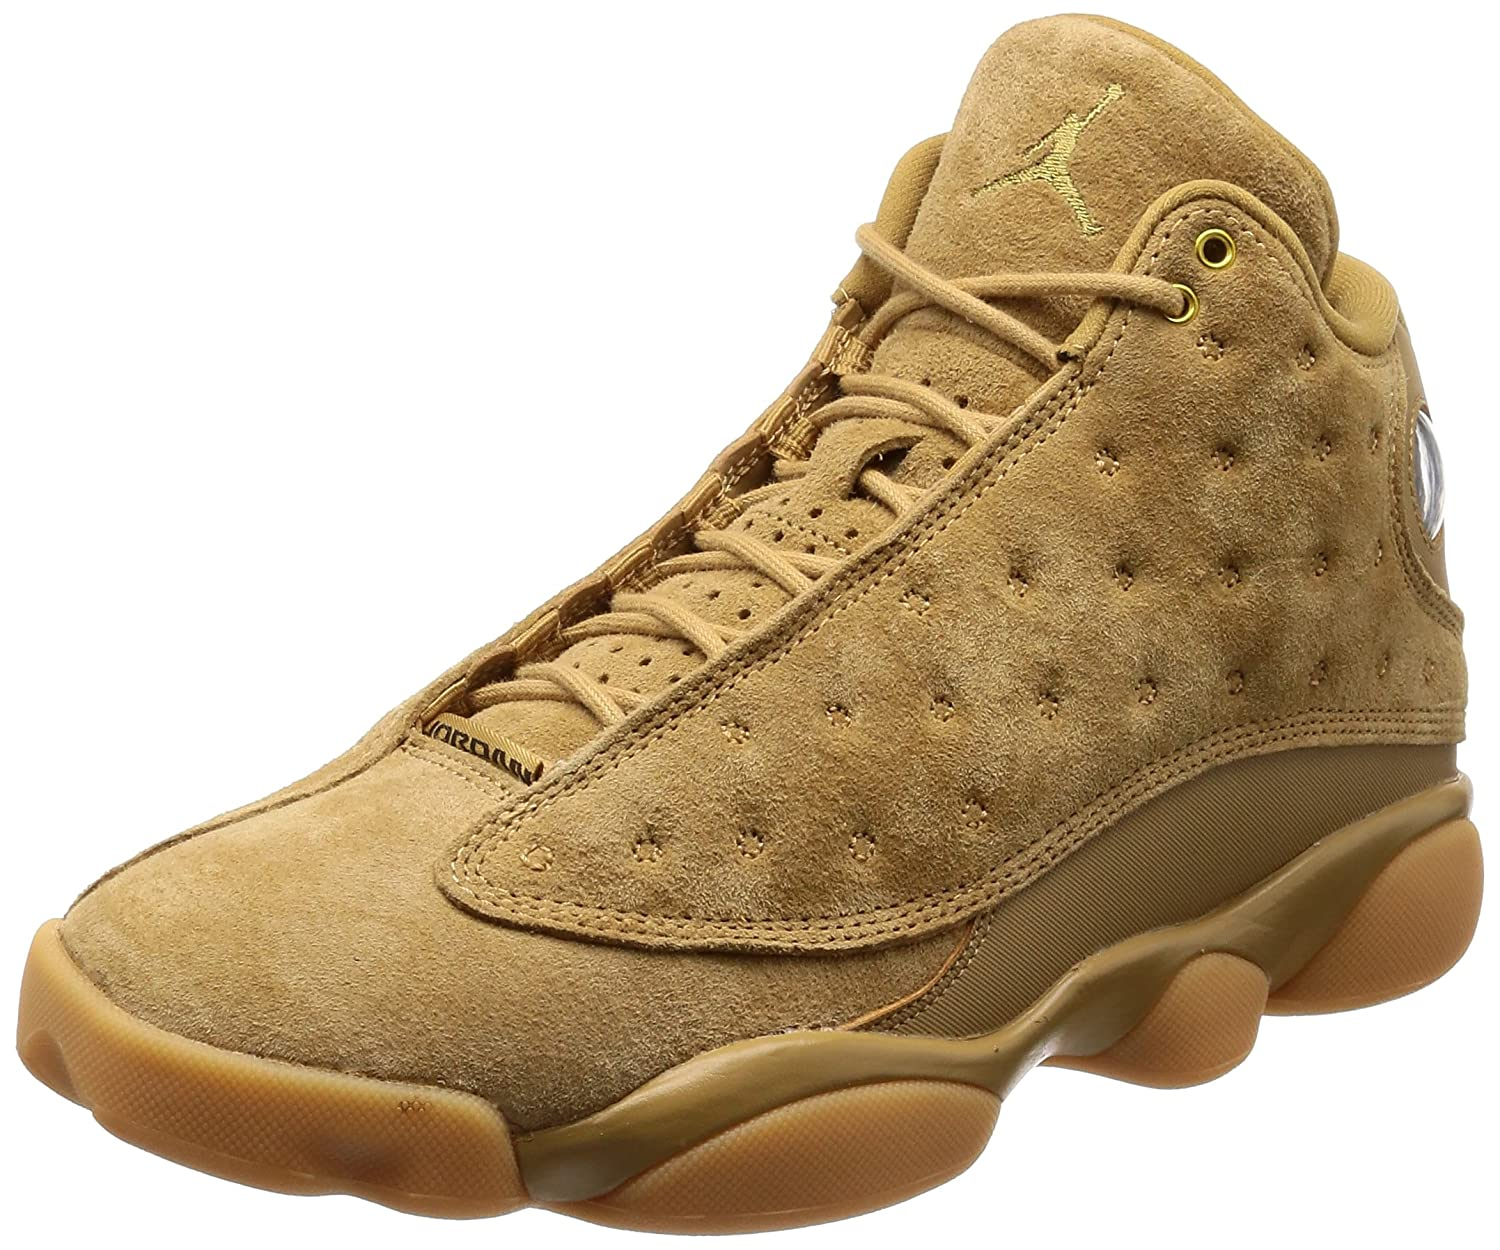 quality design 49be4 260cc Jordan Men's AIR 13 Retro, Elemental Gold/Baroque Brown, 12 M US